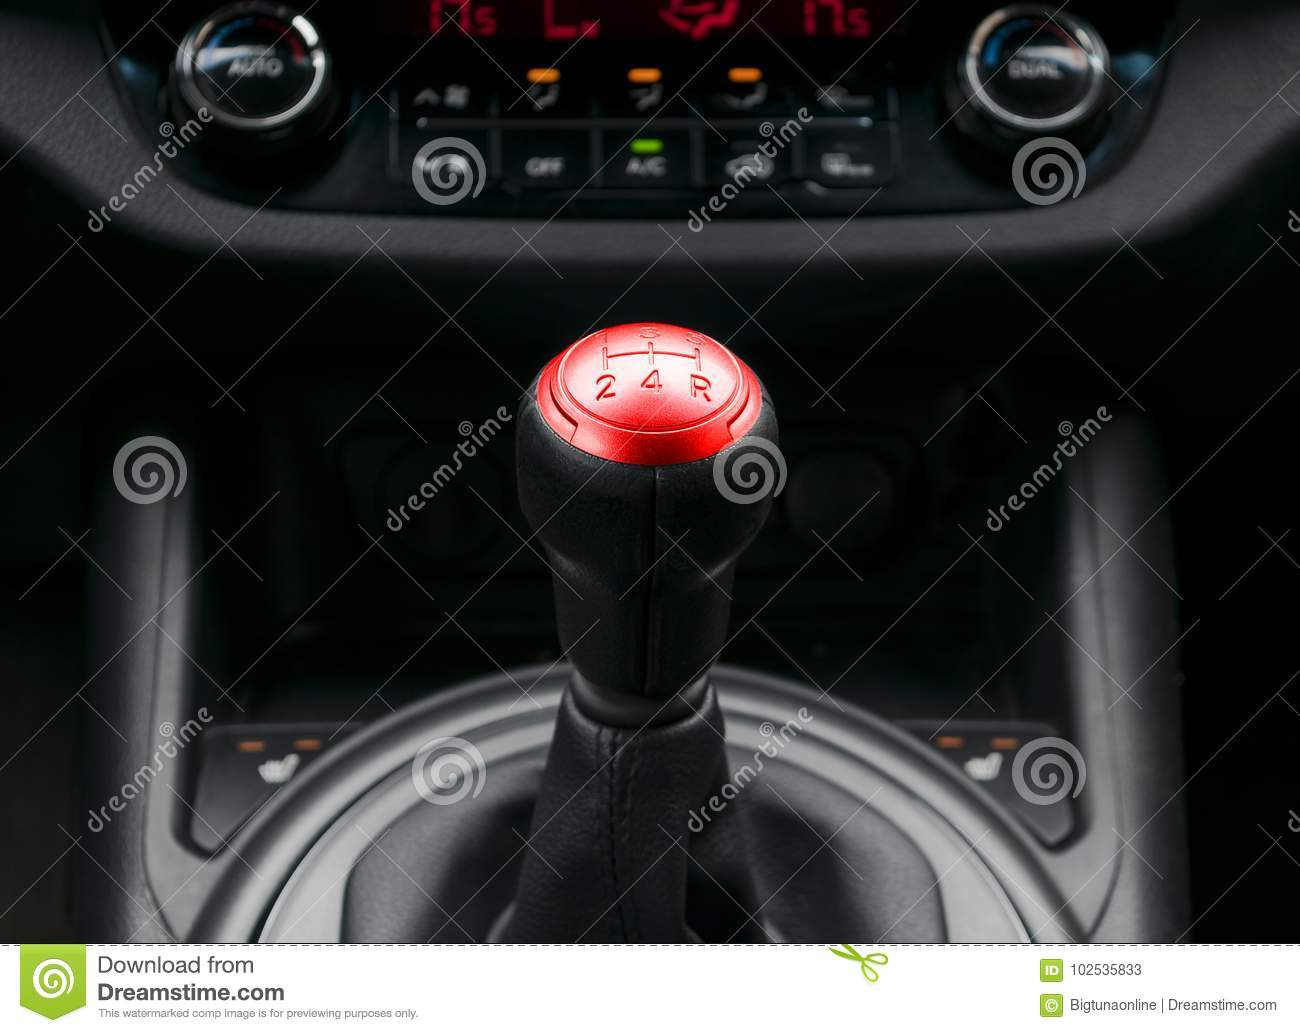 Close up view of a red gear lever shift, manual gearbox, car interior details.